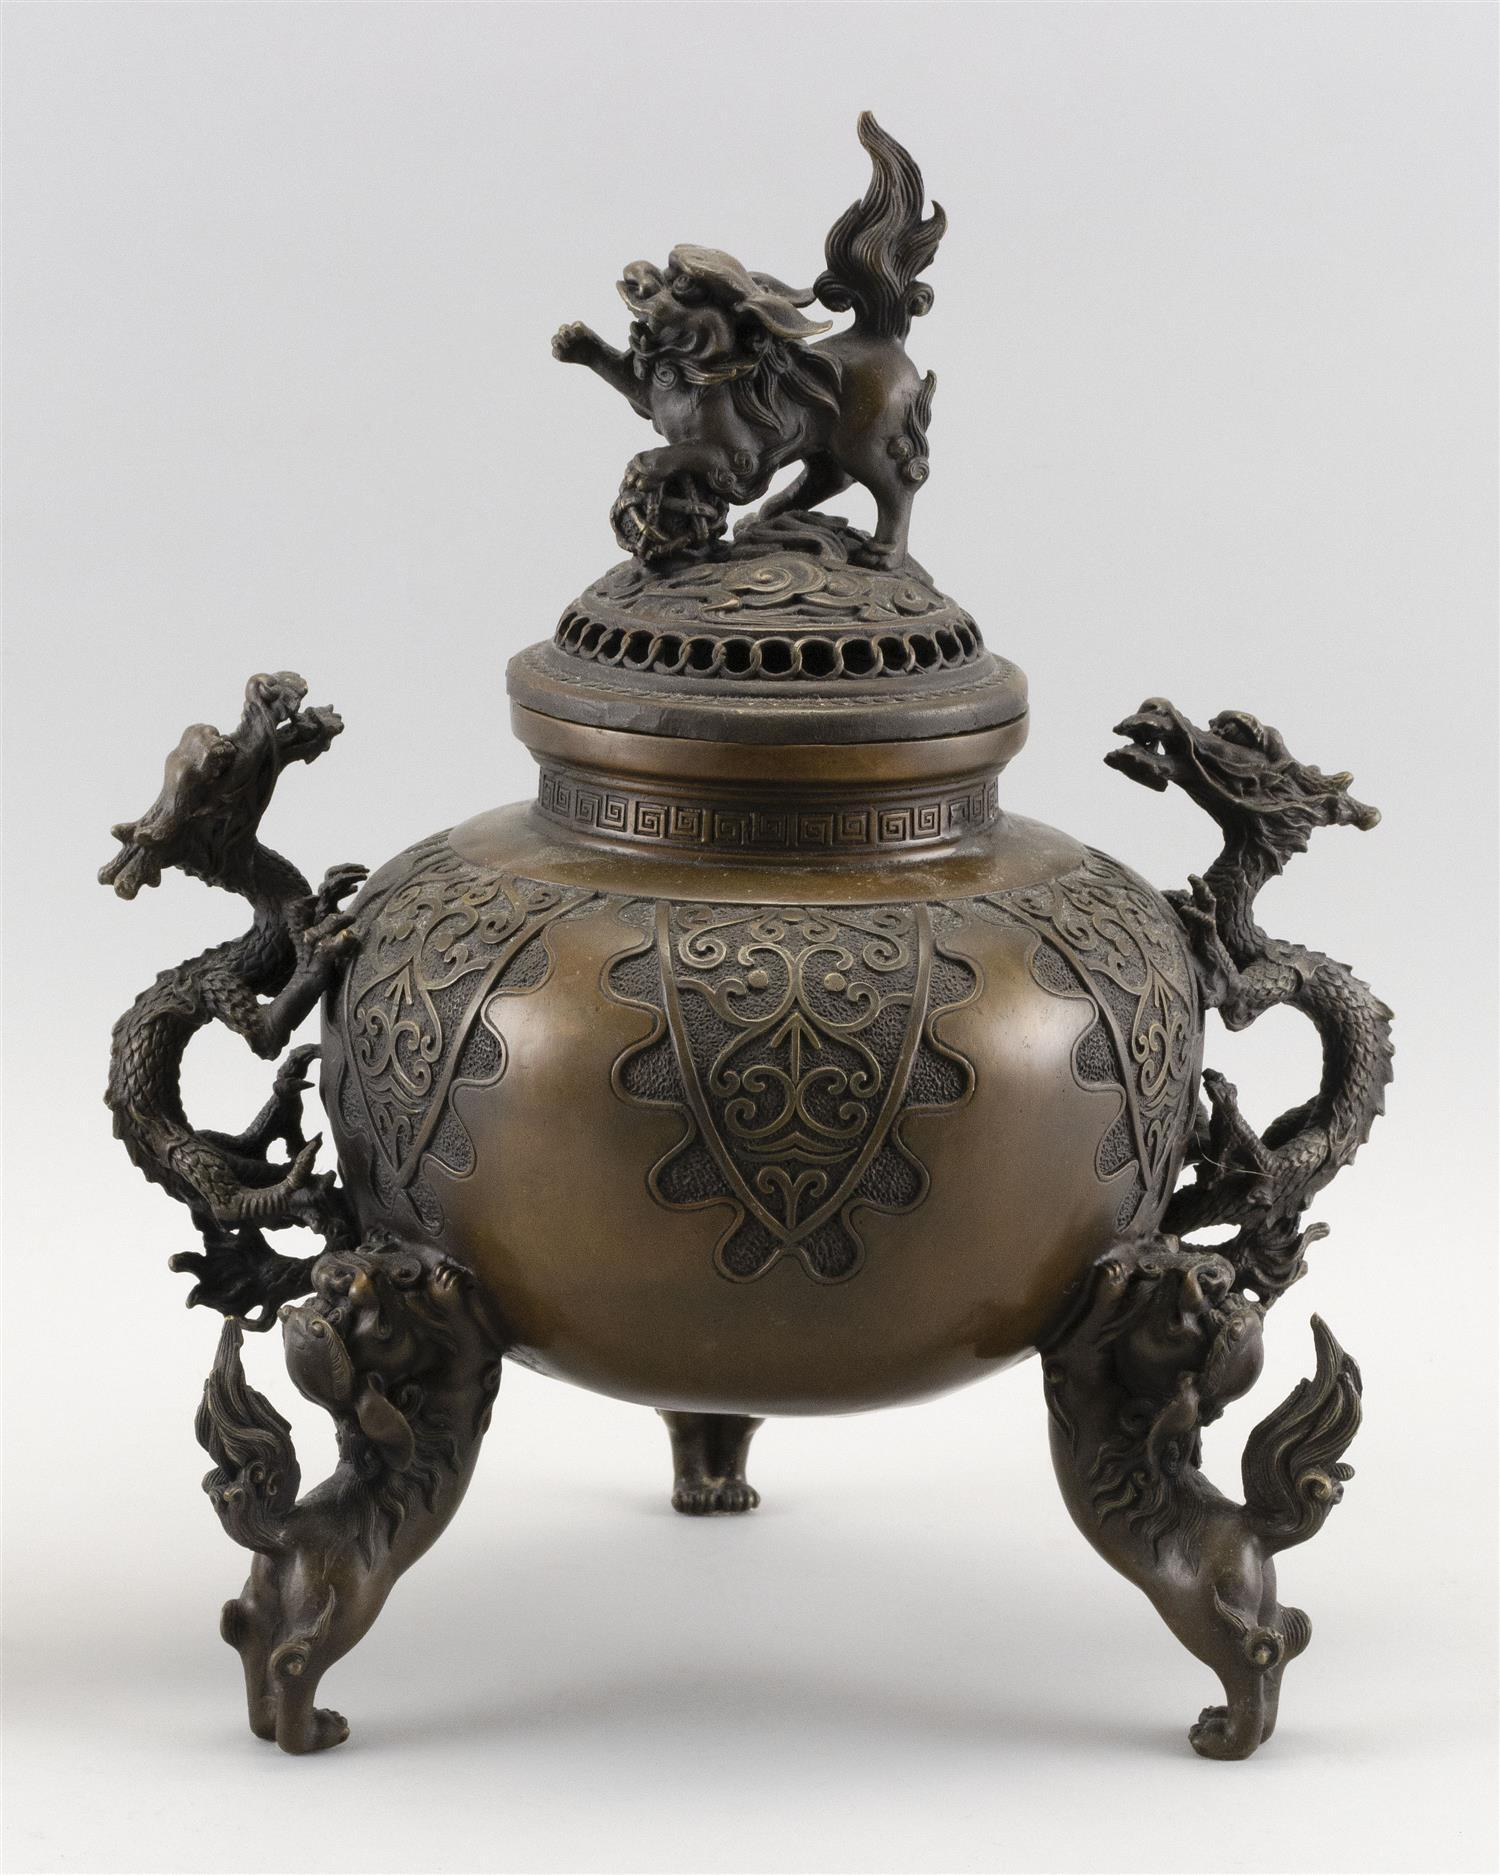 CHINESE BRONZE CENSER In ovoid form, with dragon handles and three lion feet. Domed cover with lion finial. Circular mark on base. H...